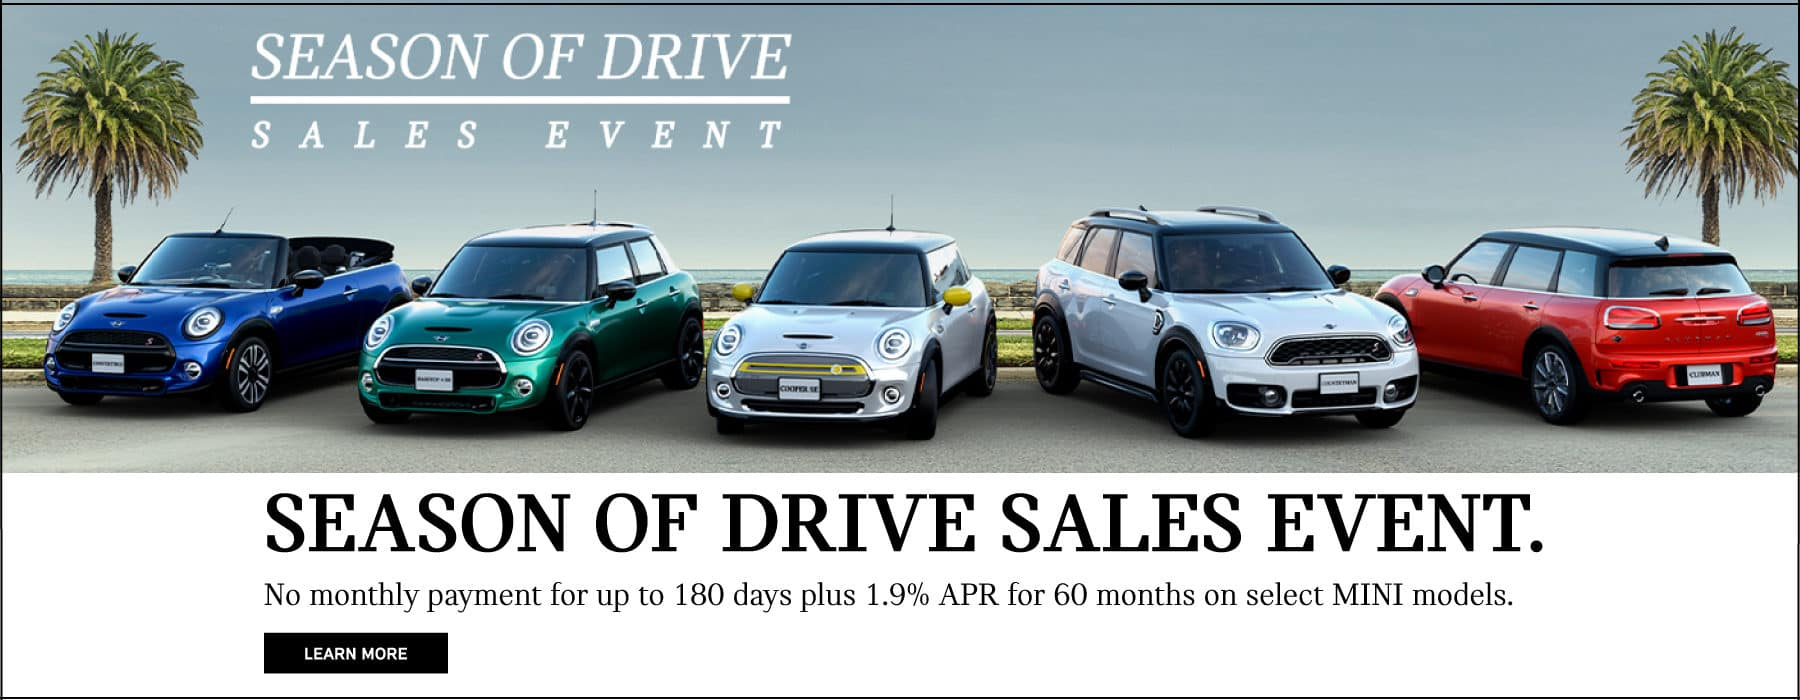 SOD* season of drive sales event. no monthly payment for 180 days plus 1.9% apr for 60 months on select mini models.